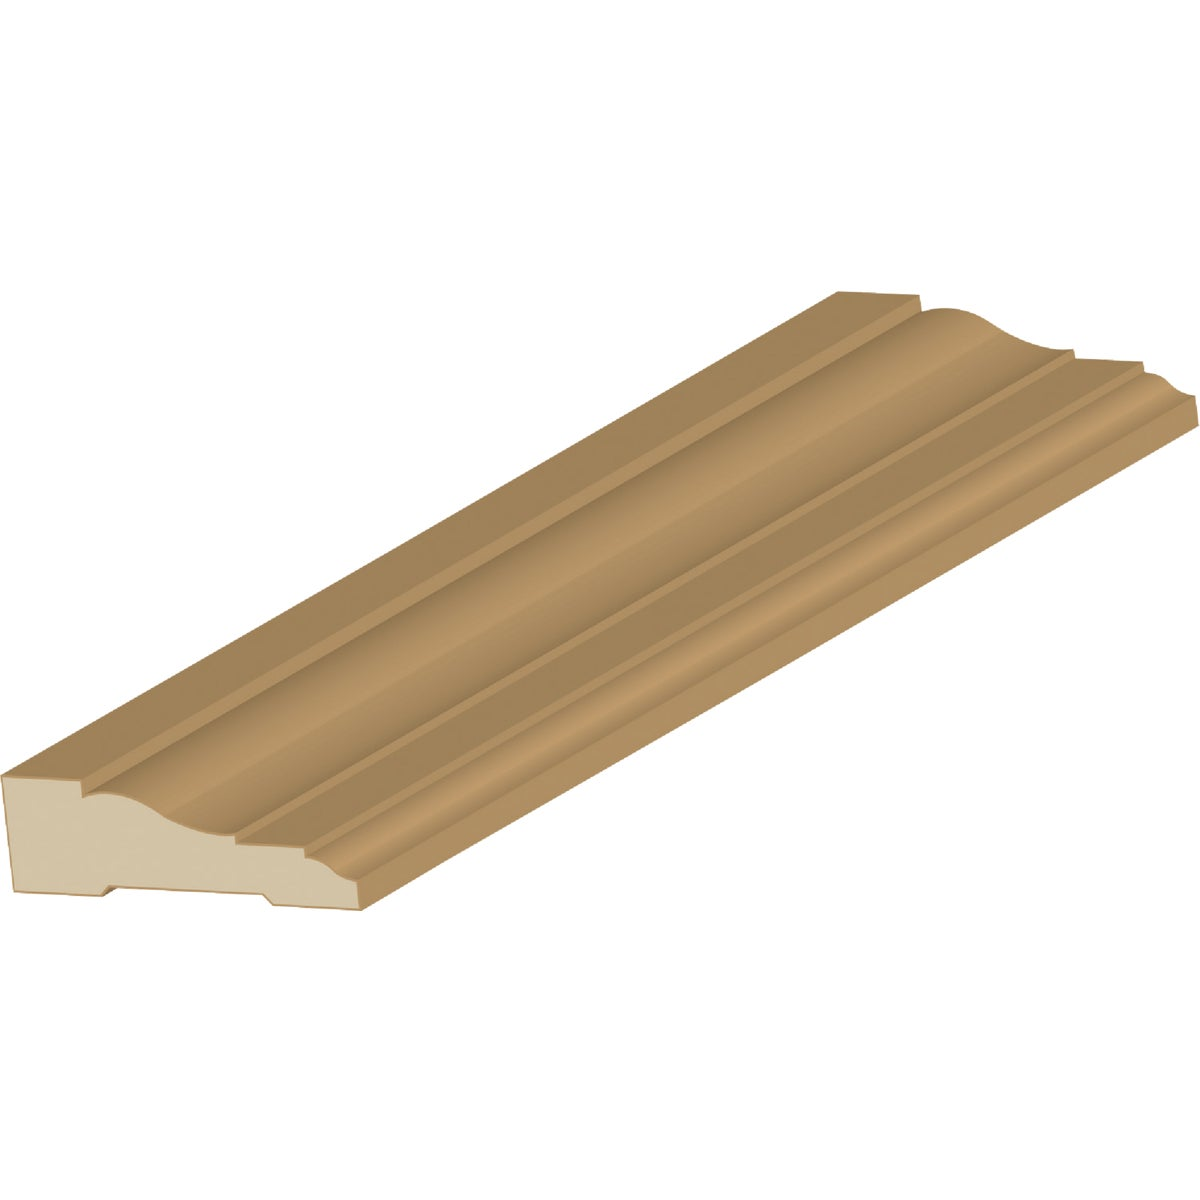 WM366 12' COL CASING - 36612PCRA by Jim White Millwork